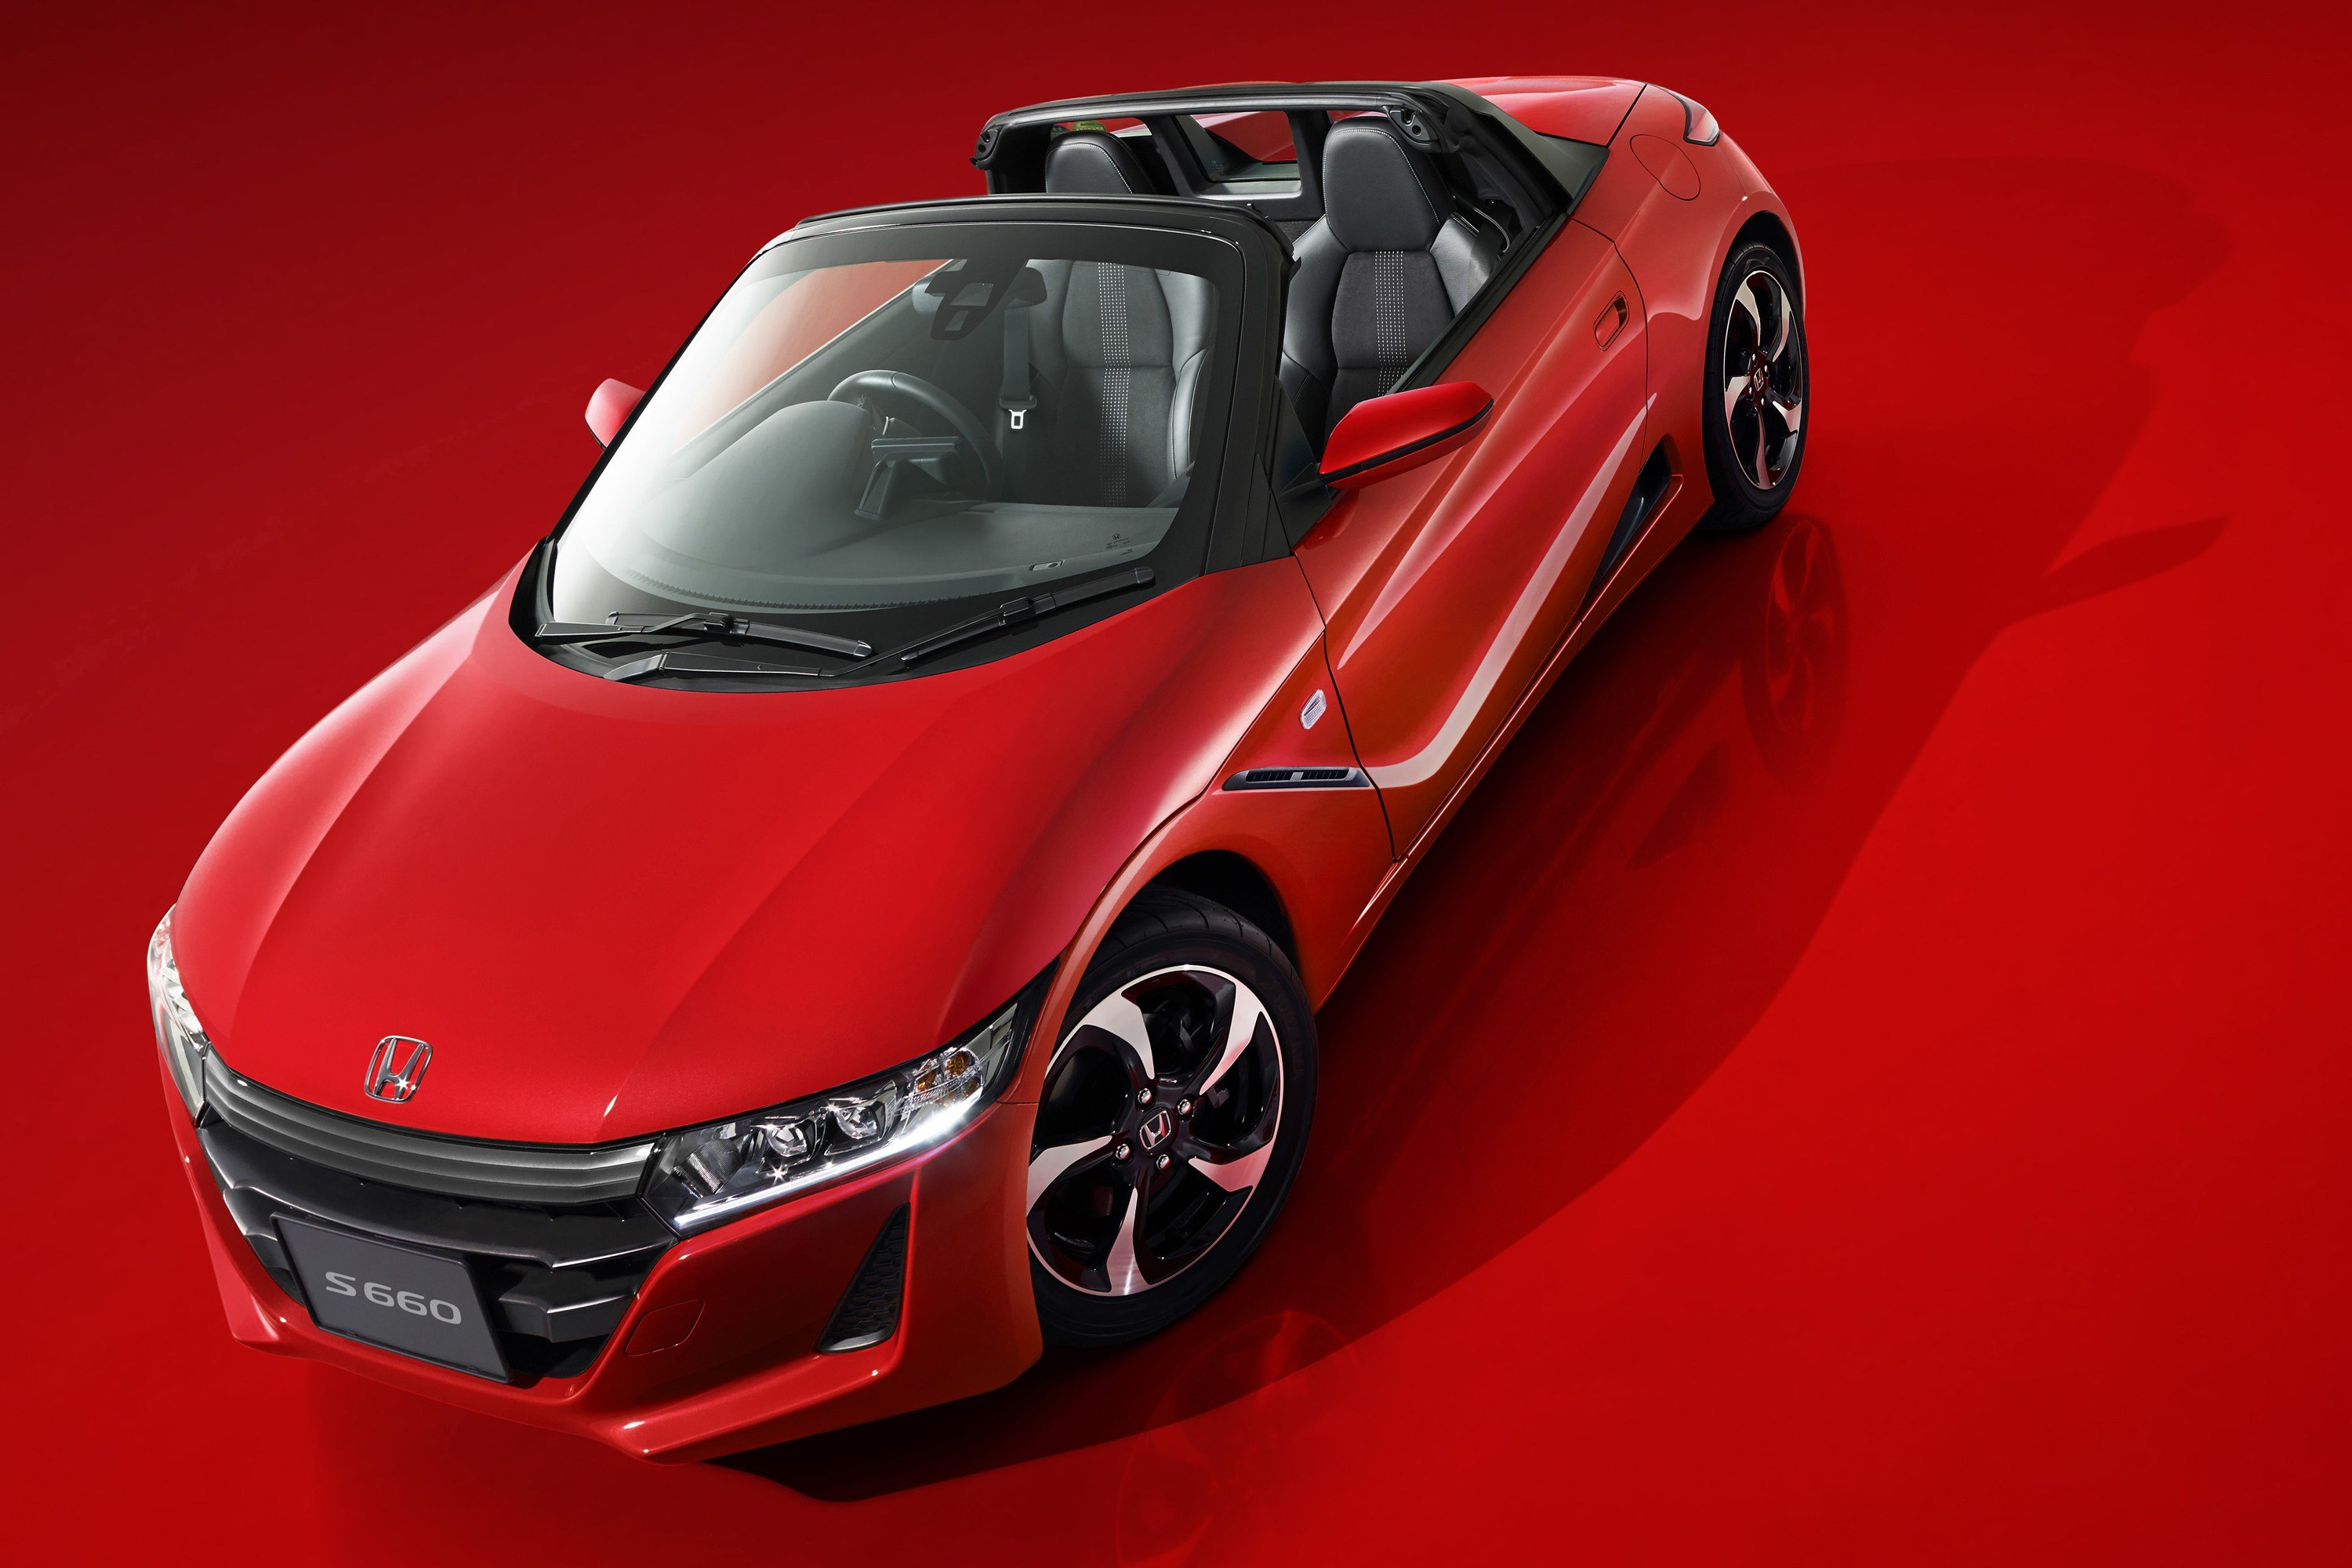 New 2015 Honda S660 Roadster Photo Gallery On This Month